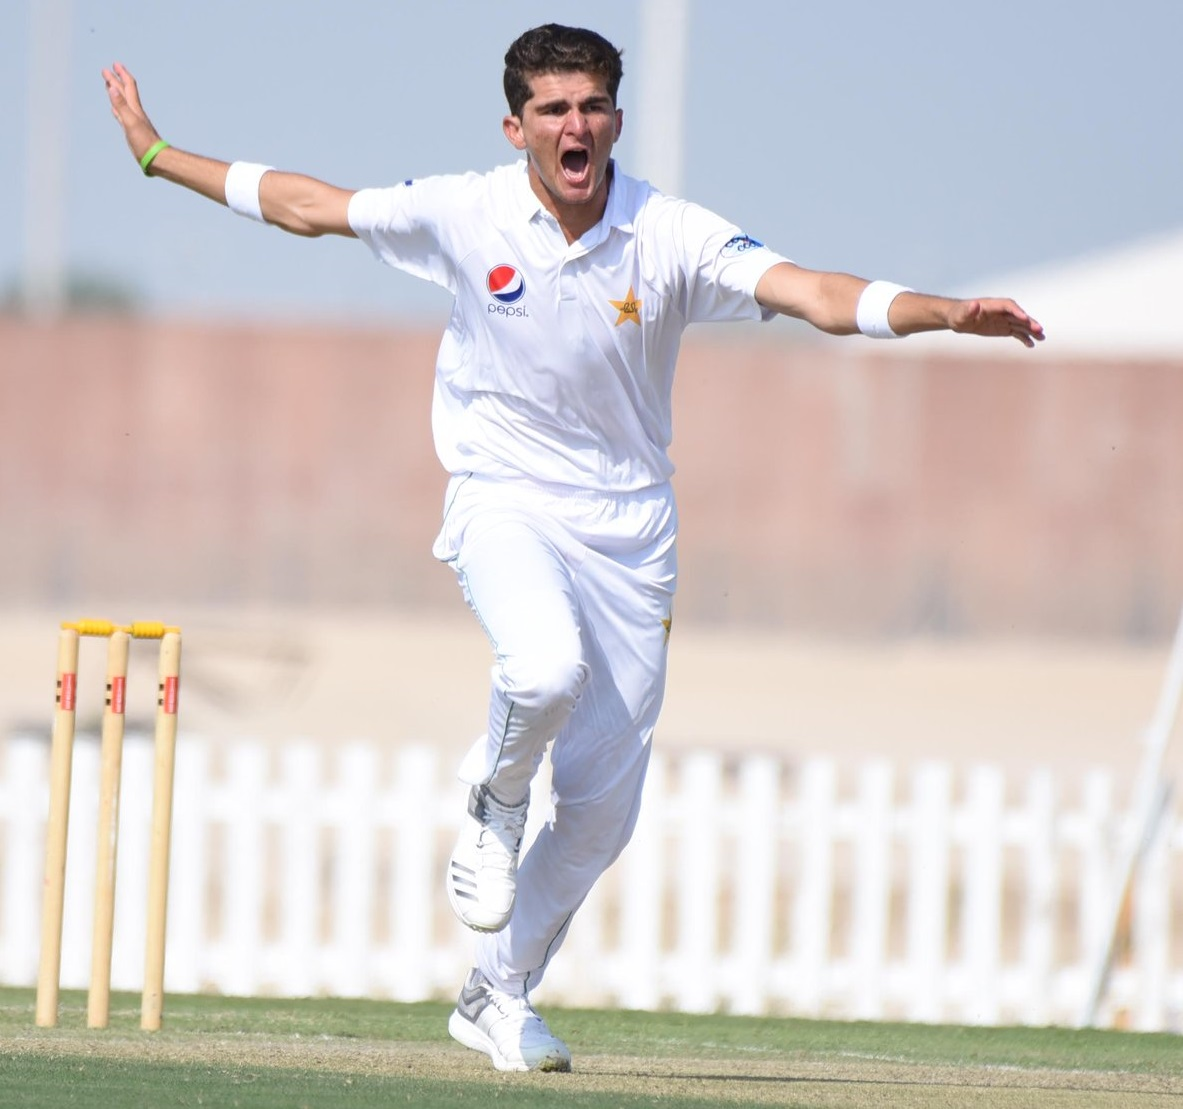 Pakistan A reach 33/2 at Stumps after bowling out England Lions for 240